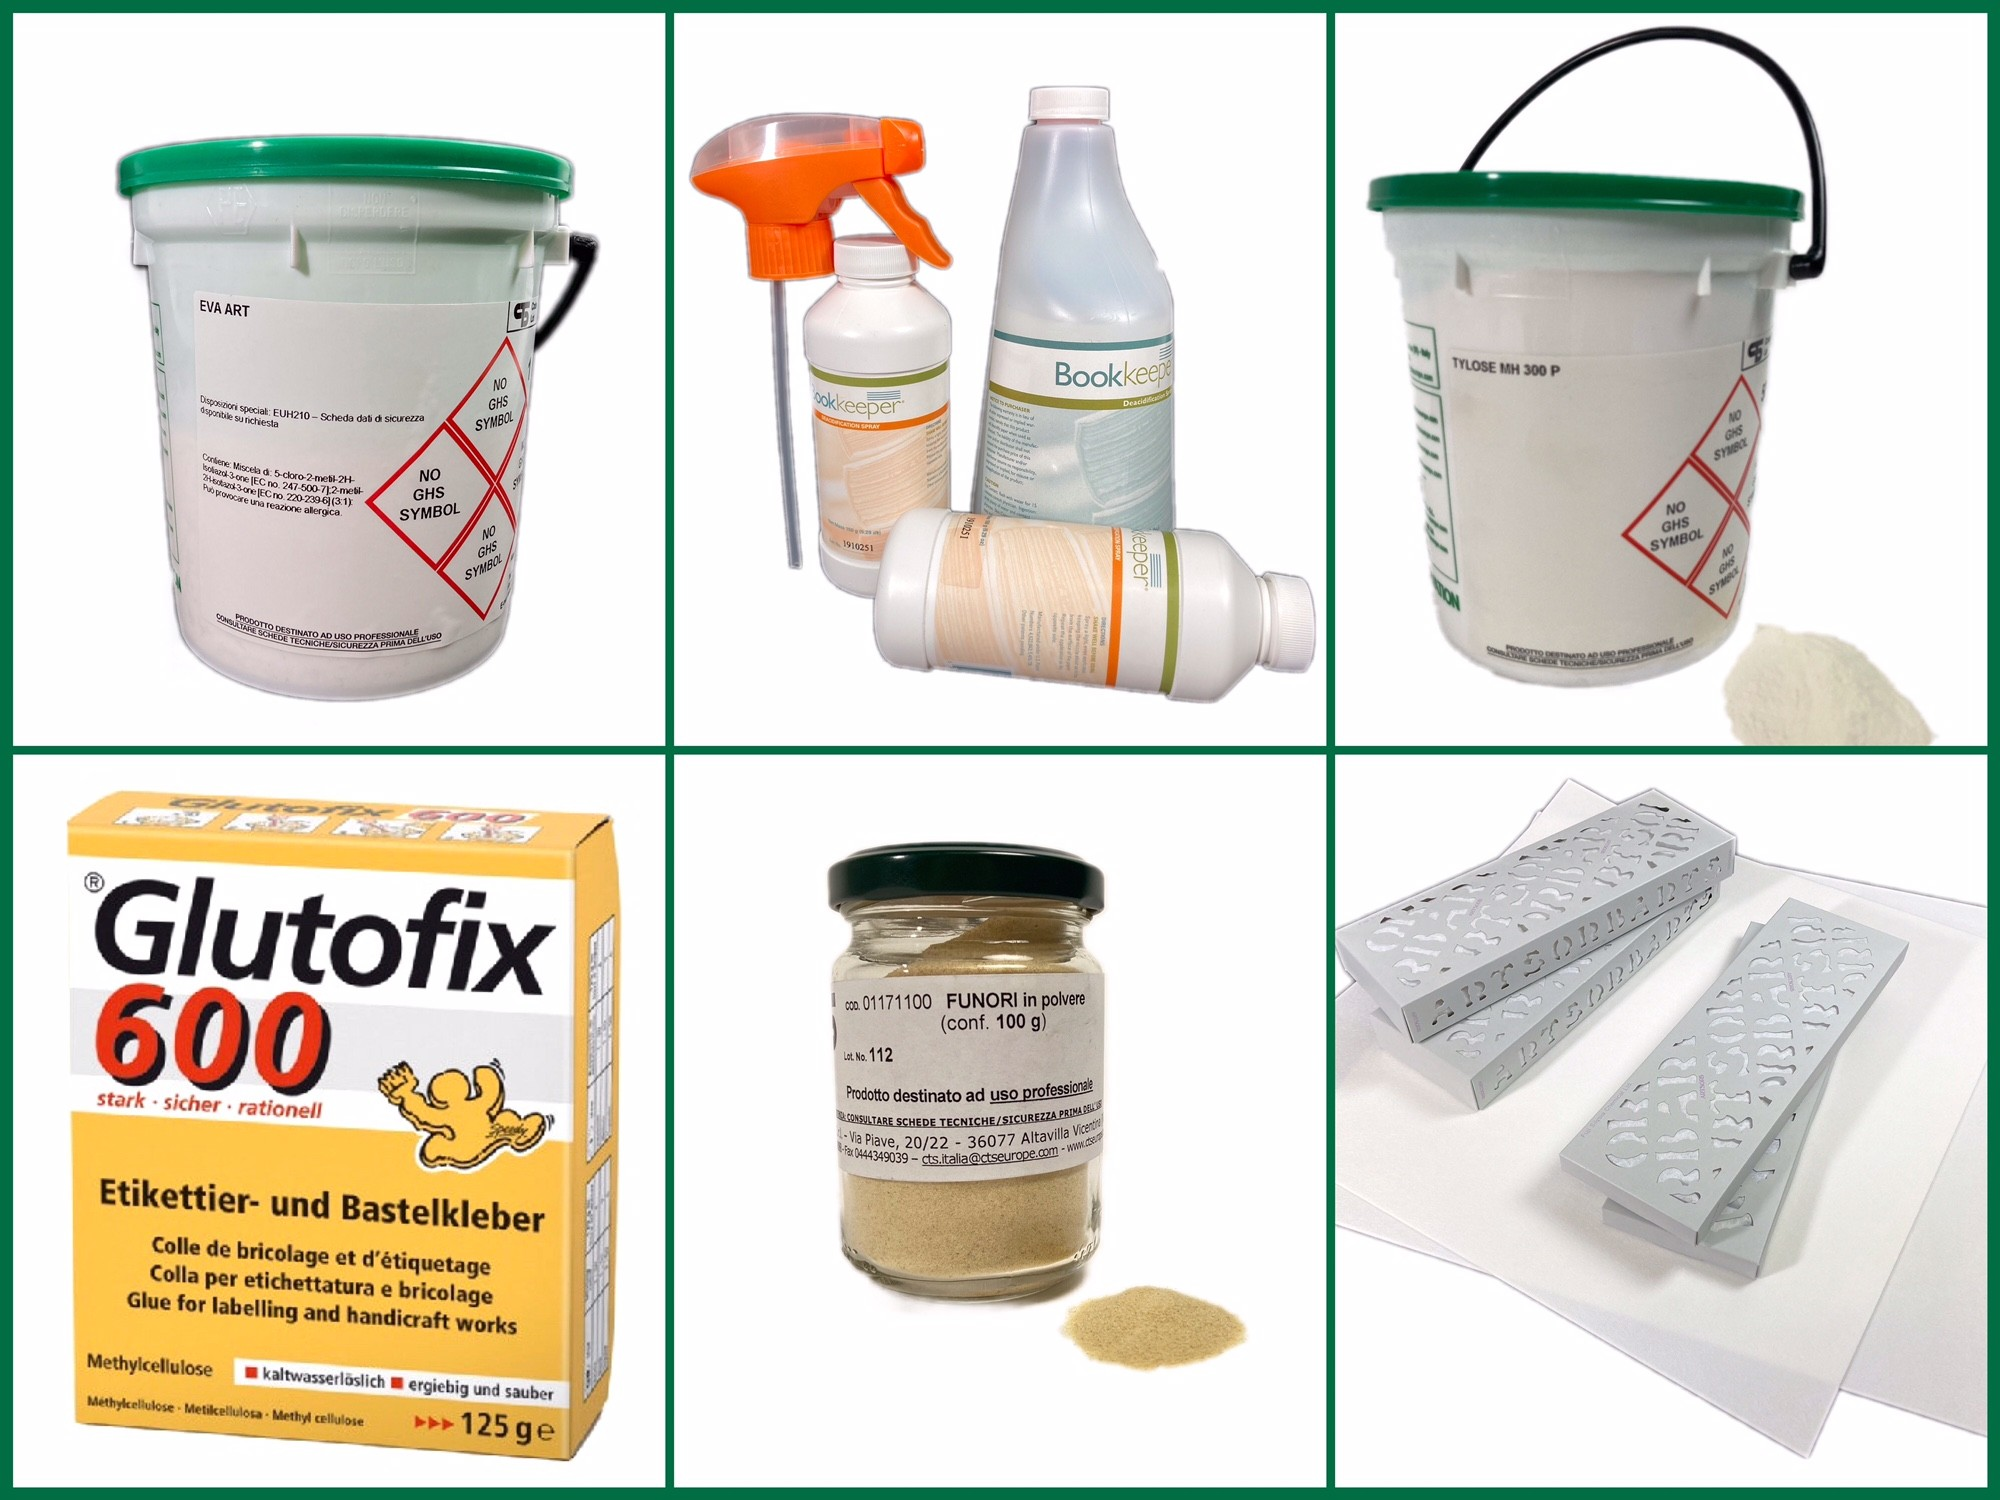 Cleaning and repairing products